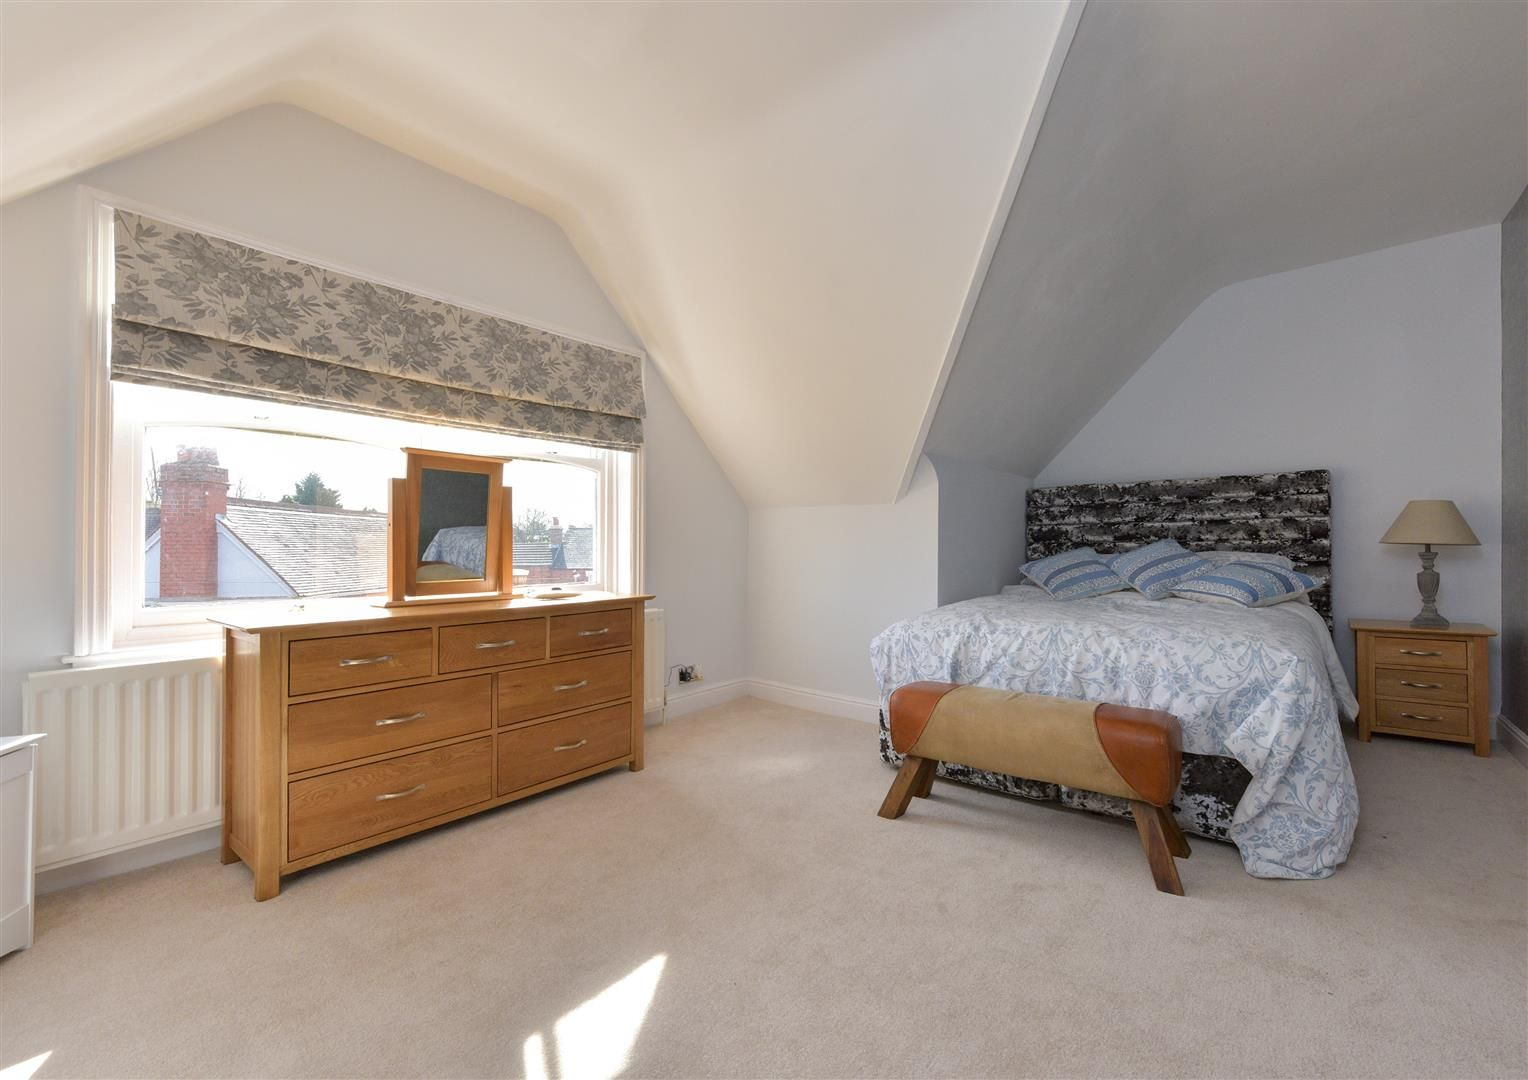 4 bed terraced for sale in Old Quarter  - Property Image 11